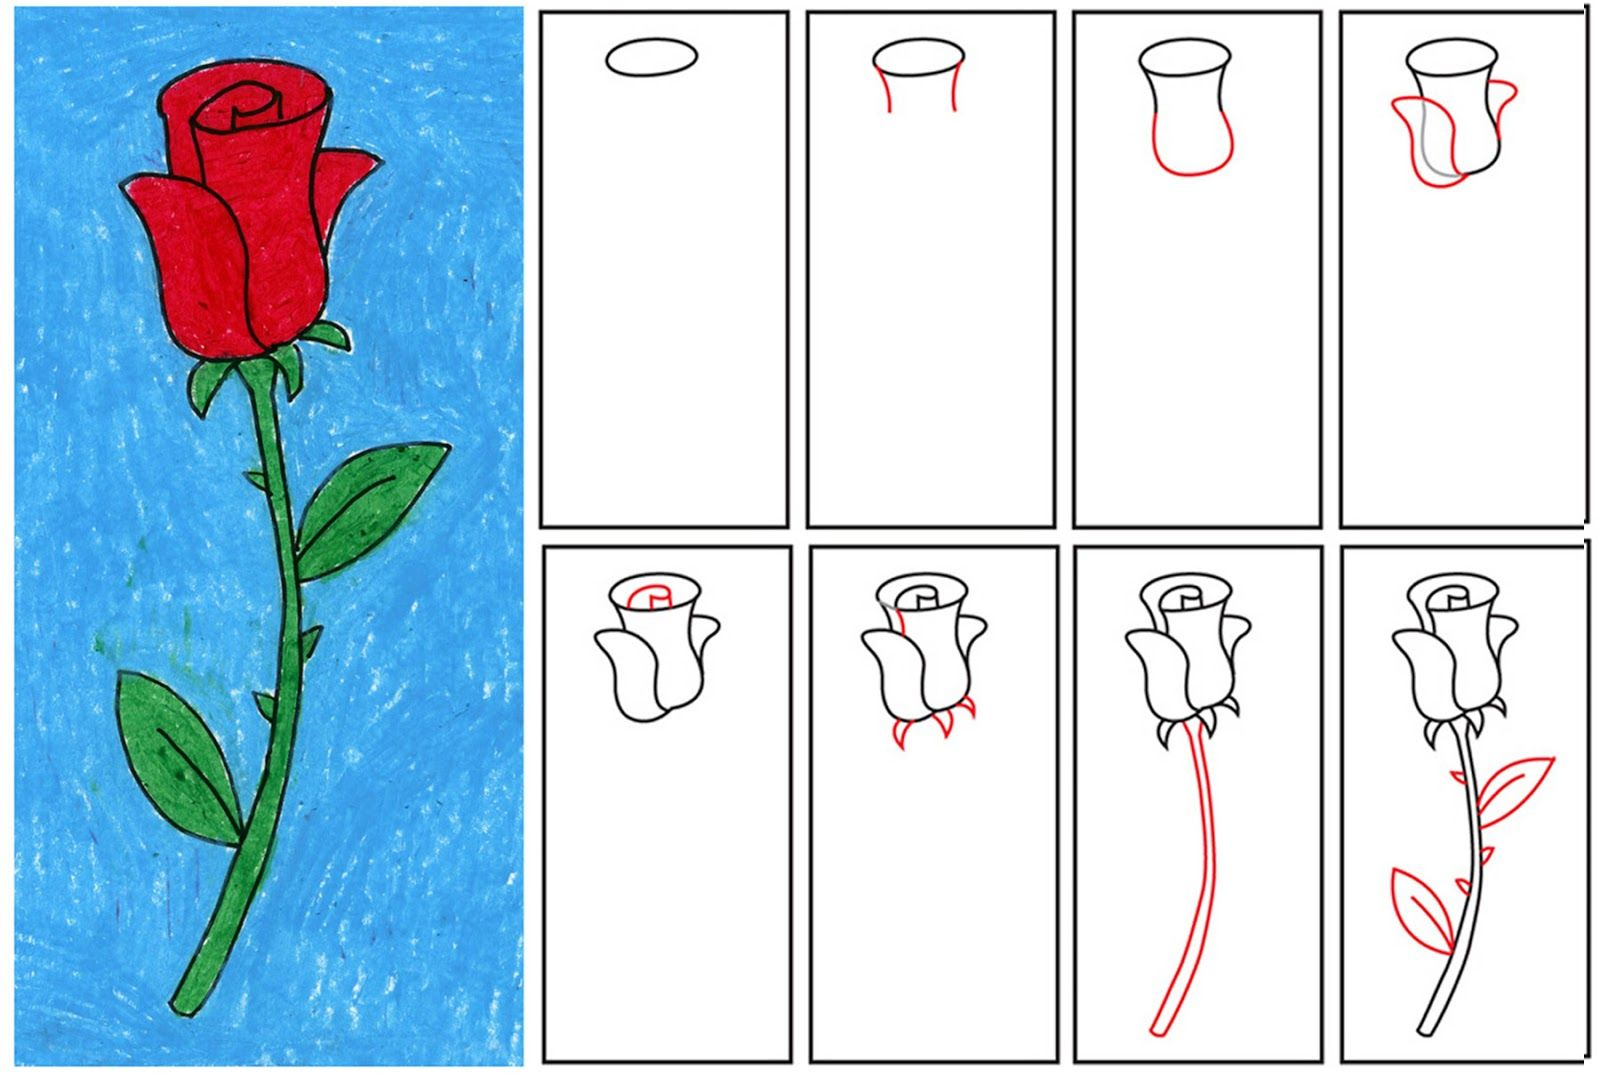 Learn how to draw a rose!  1. Follow the steps shown to draw your flower with a pencil. The gray lines indicate erasing. 2. Trace your flower with a Sharpie marker. 3. This flower is colored in with Portfolio® Oil Pastels, but any bright colors will do.  www.artprojectsforkids.org